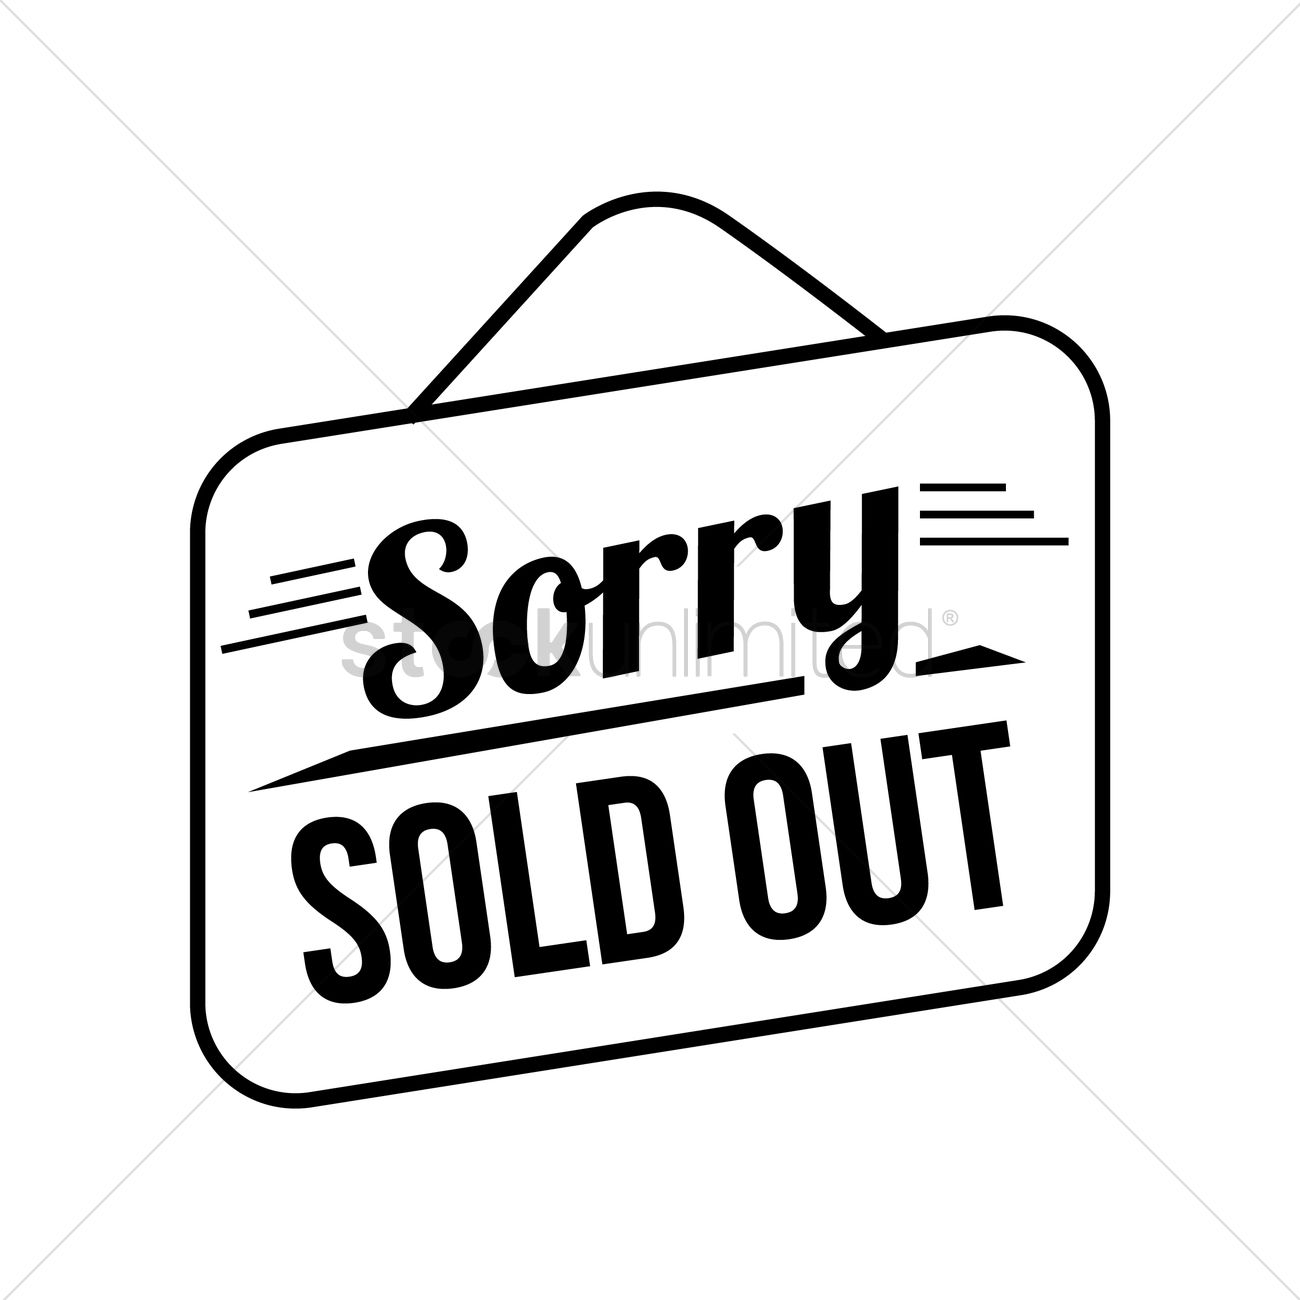 Sorry Sold Out Signboard Vector Image